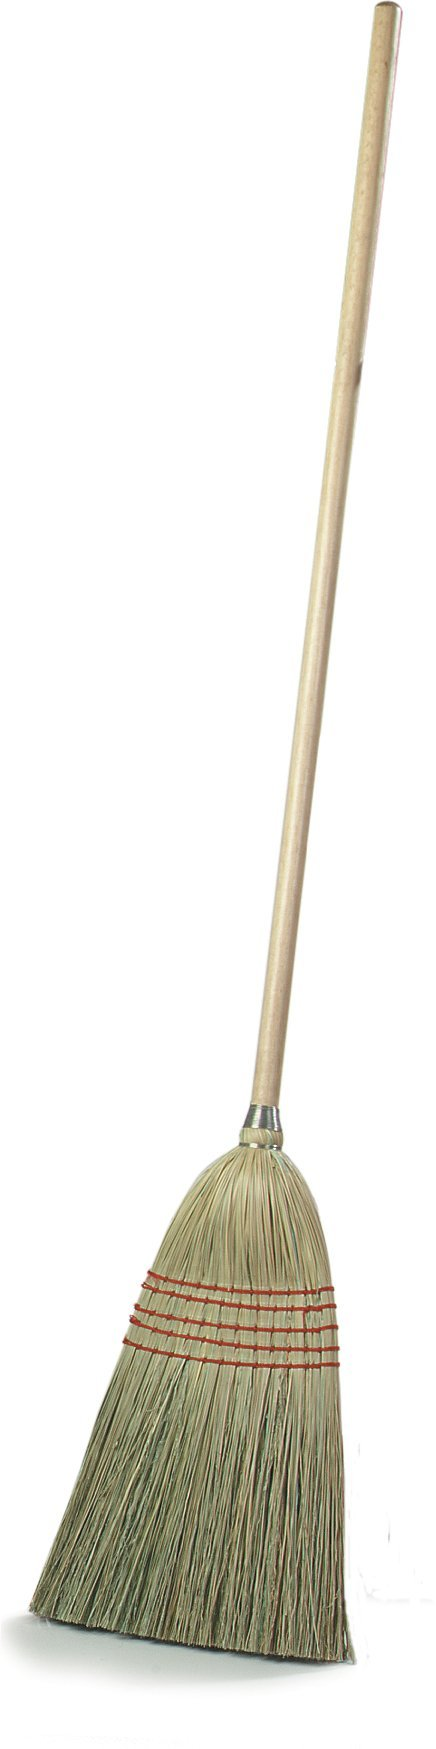 Carlisle 4135200 Flo-Pac Corn Blend Corn Parlor Broom Straw with Wood Handle, 55'' Length (Case of 12)